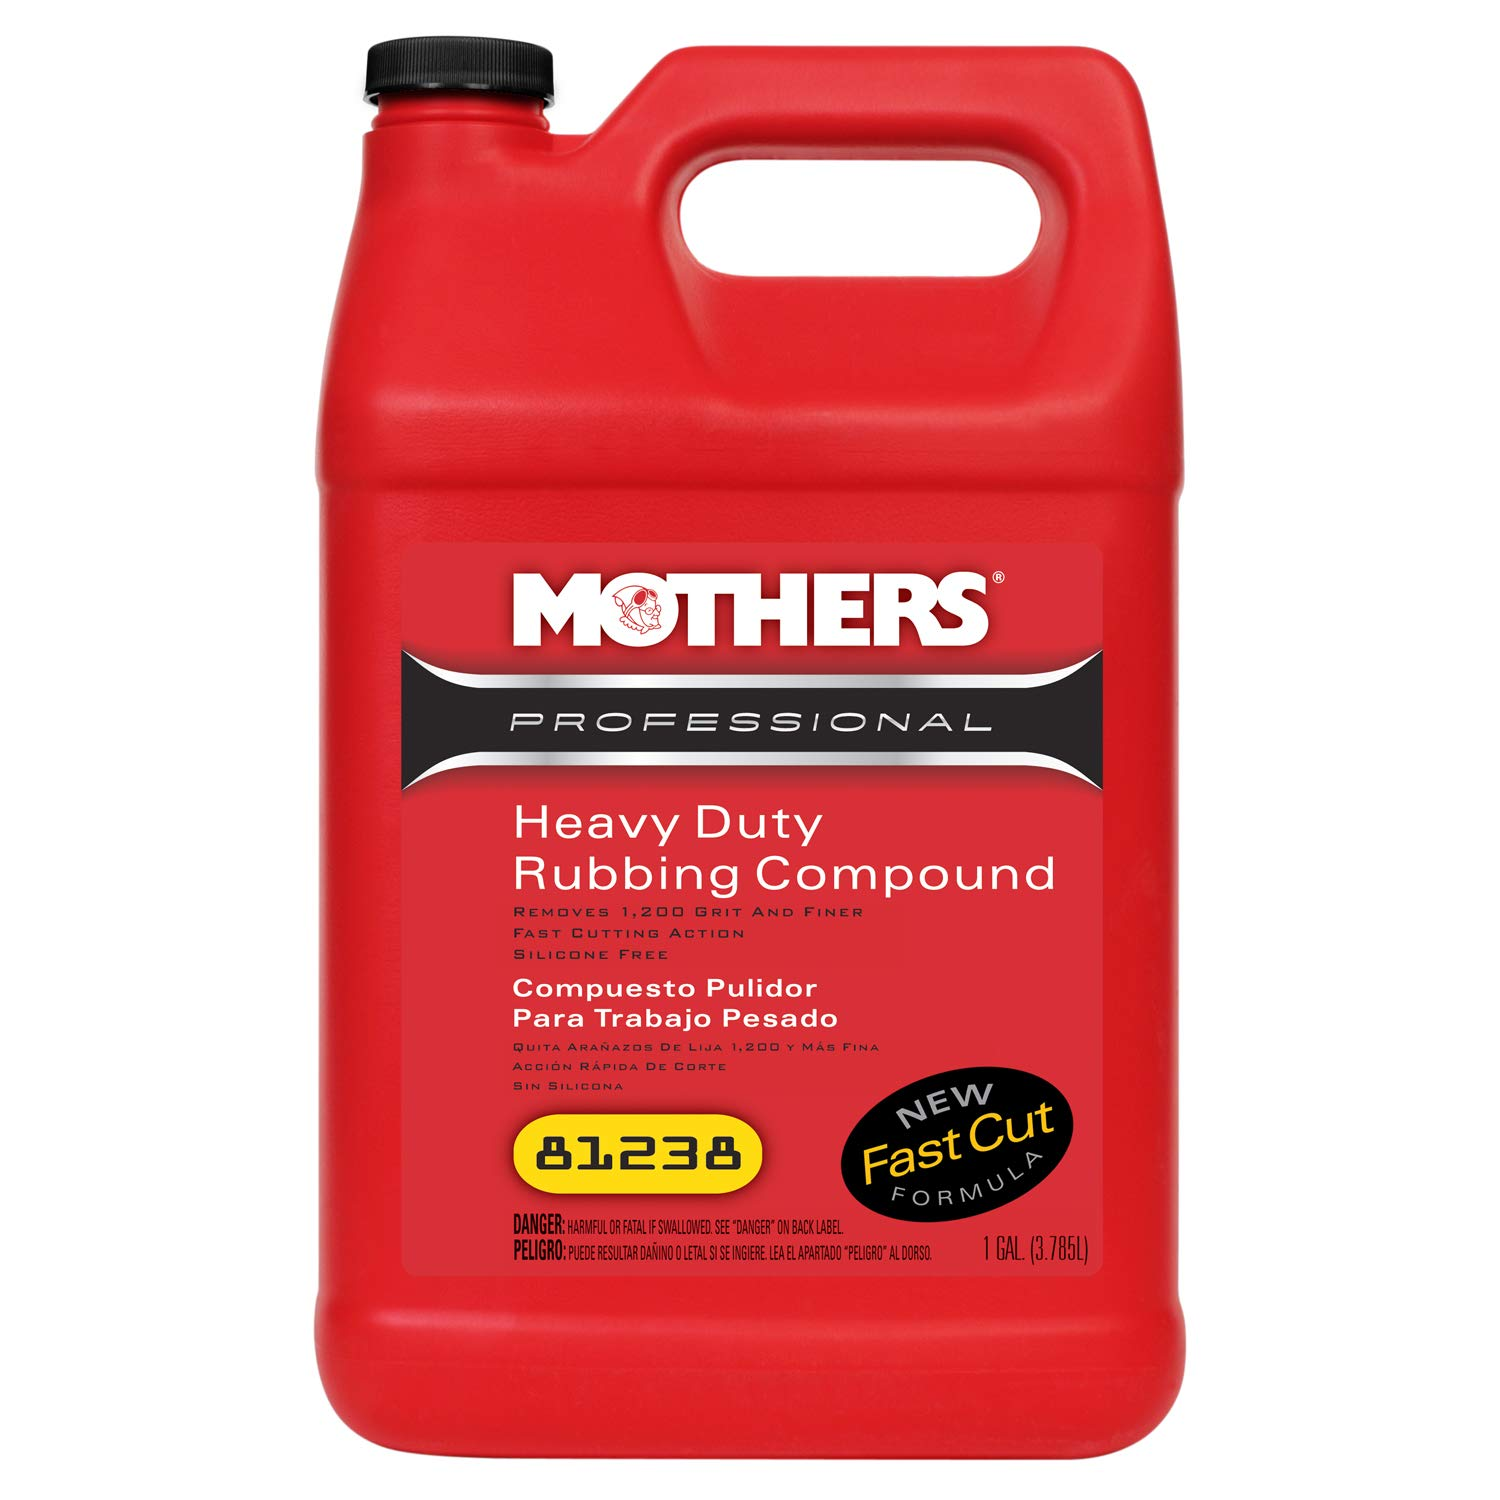 Mothers 81238 Professional Heavy Duty Rubbing Compound - 1 Gallon